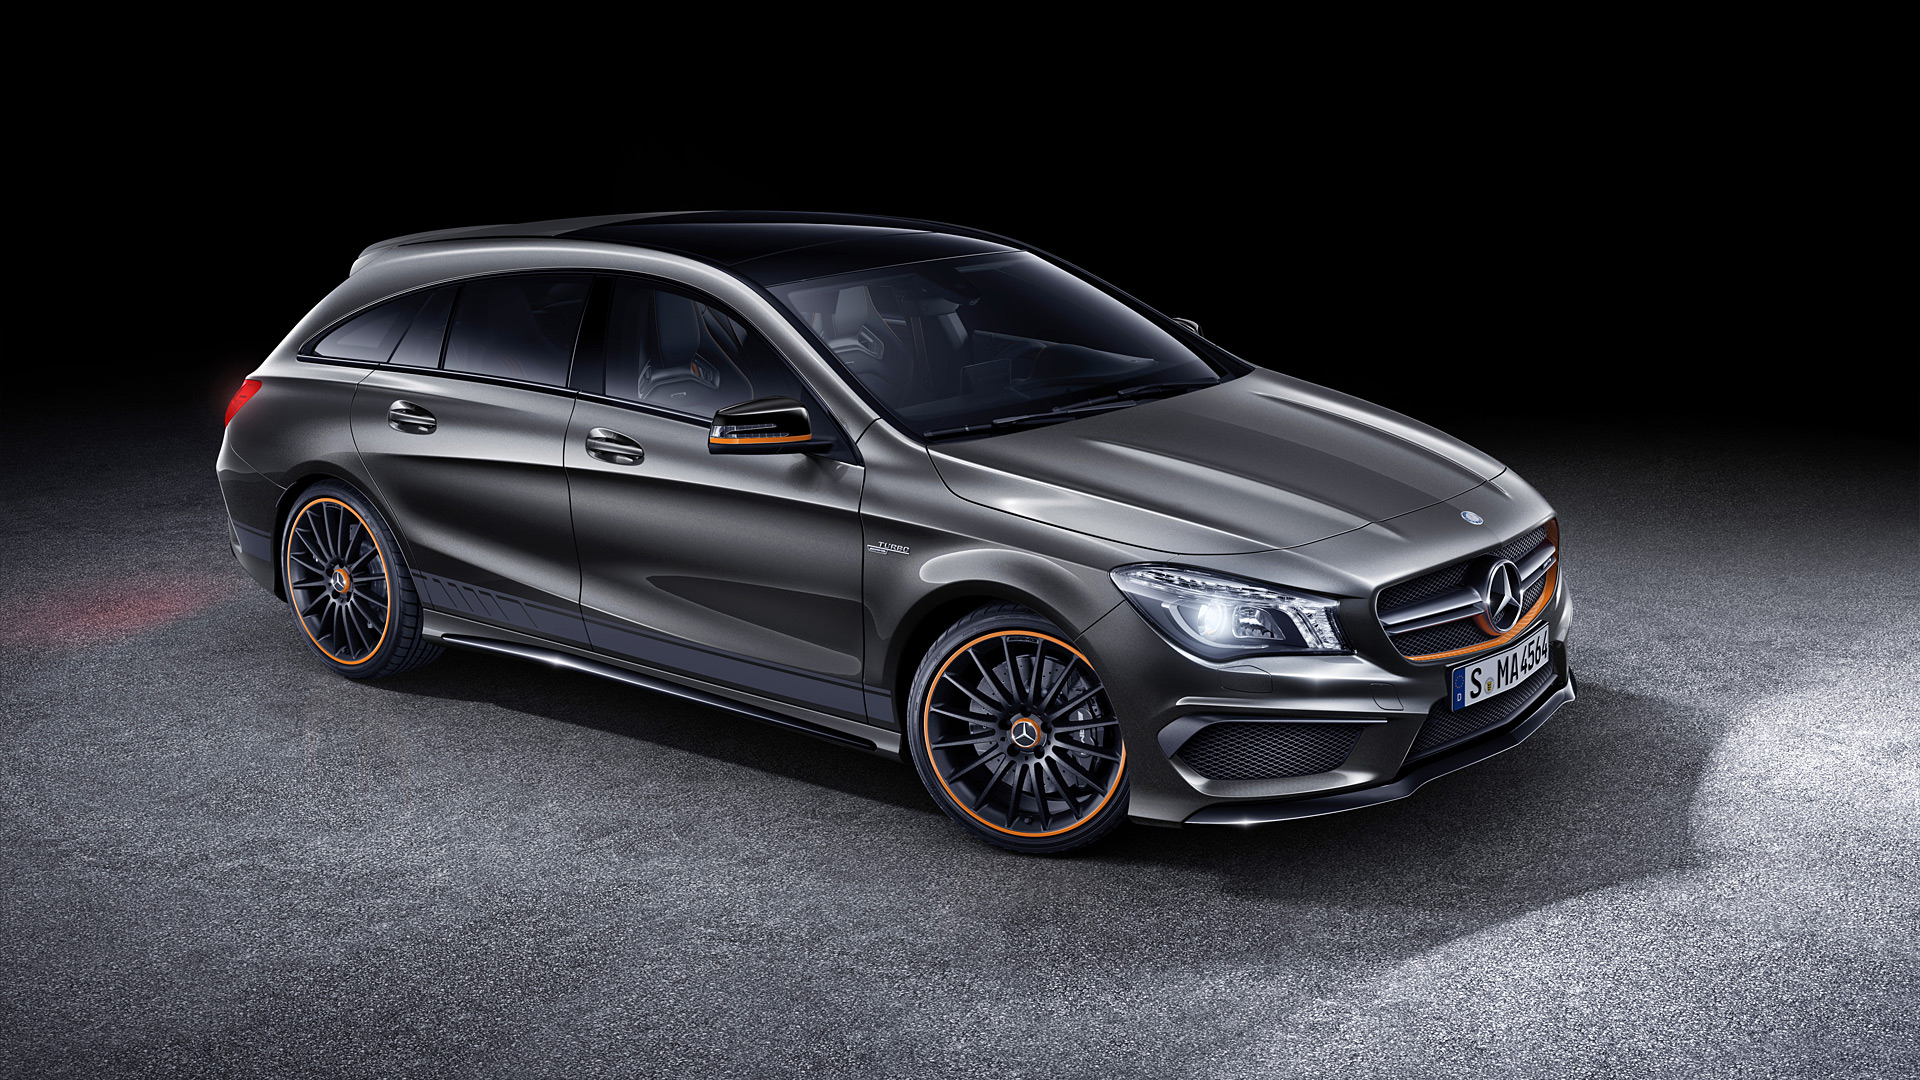 2016 Mercedes Benz CLA45 AMG Shooting Brake Wallpapers HD Images 1920x1080